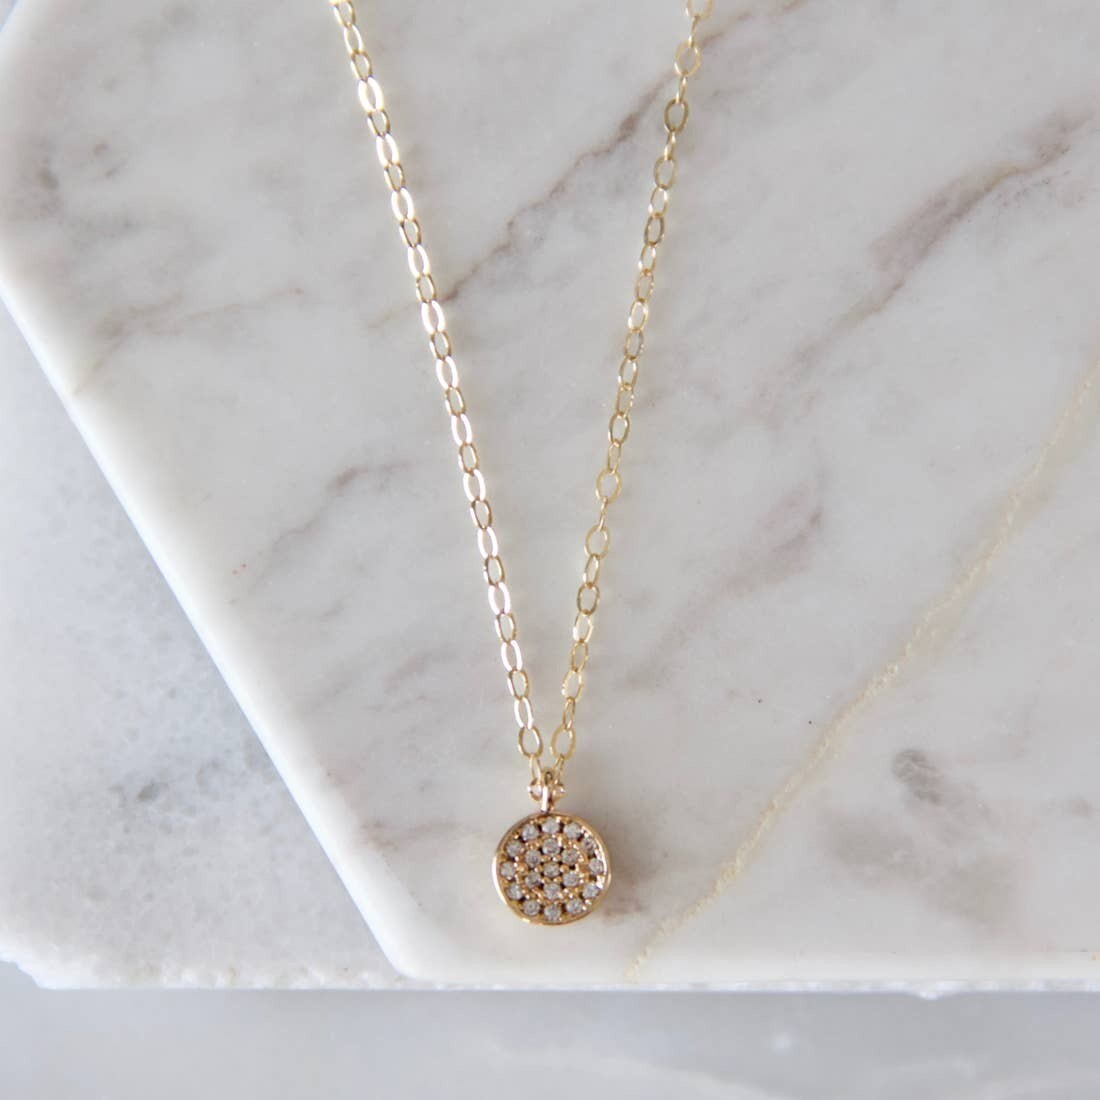 Zircon Coin Necklace